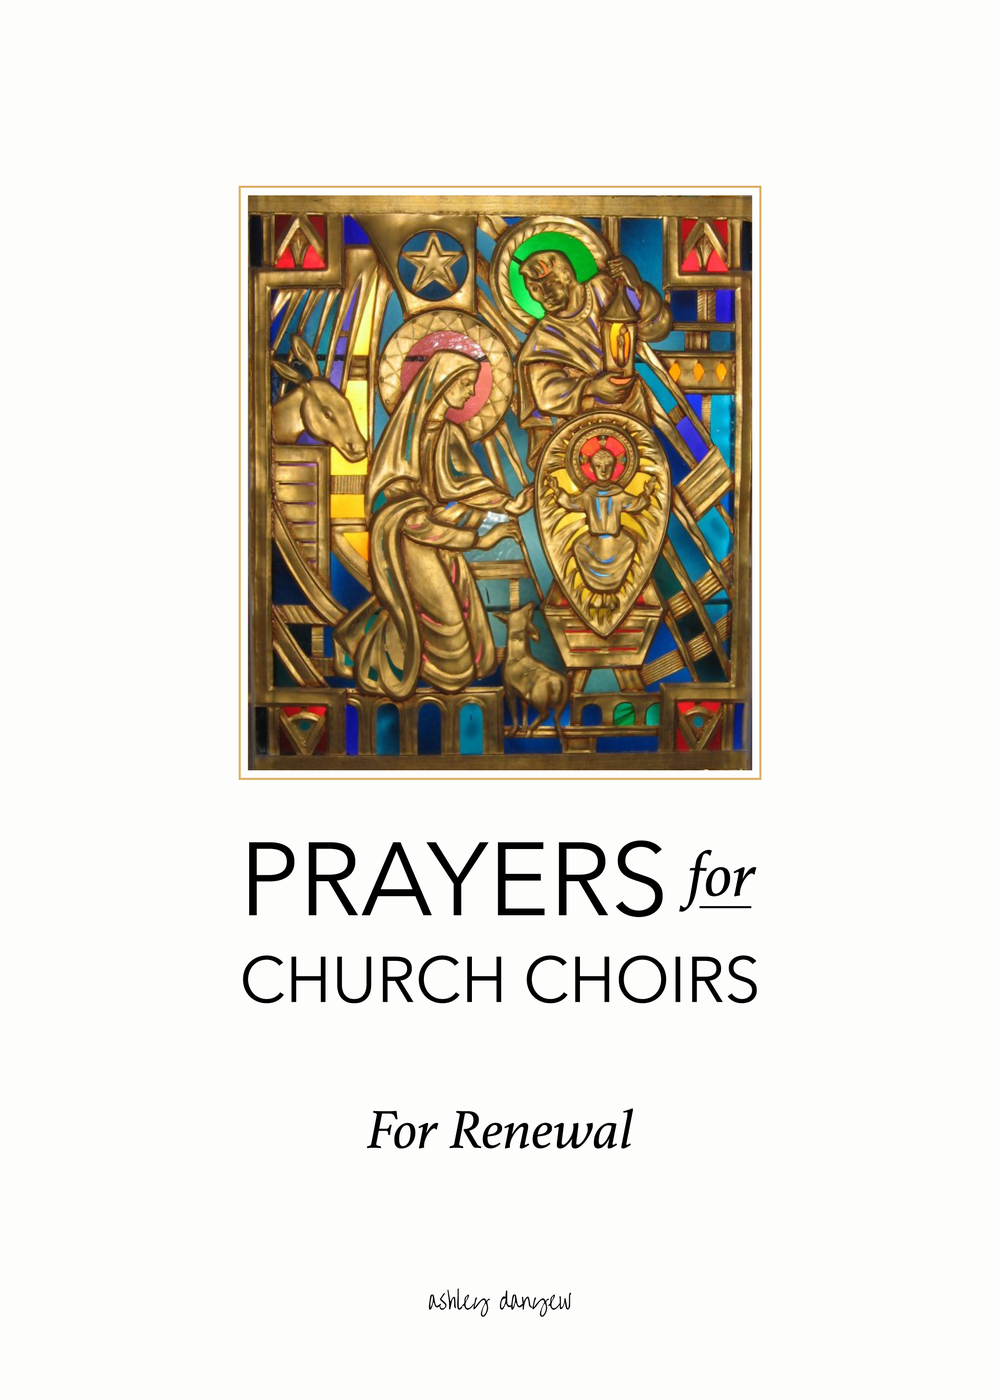 Prayers-for-Church-Choirs_Renewal-03.png